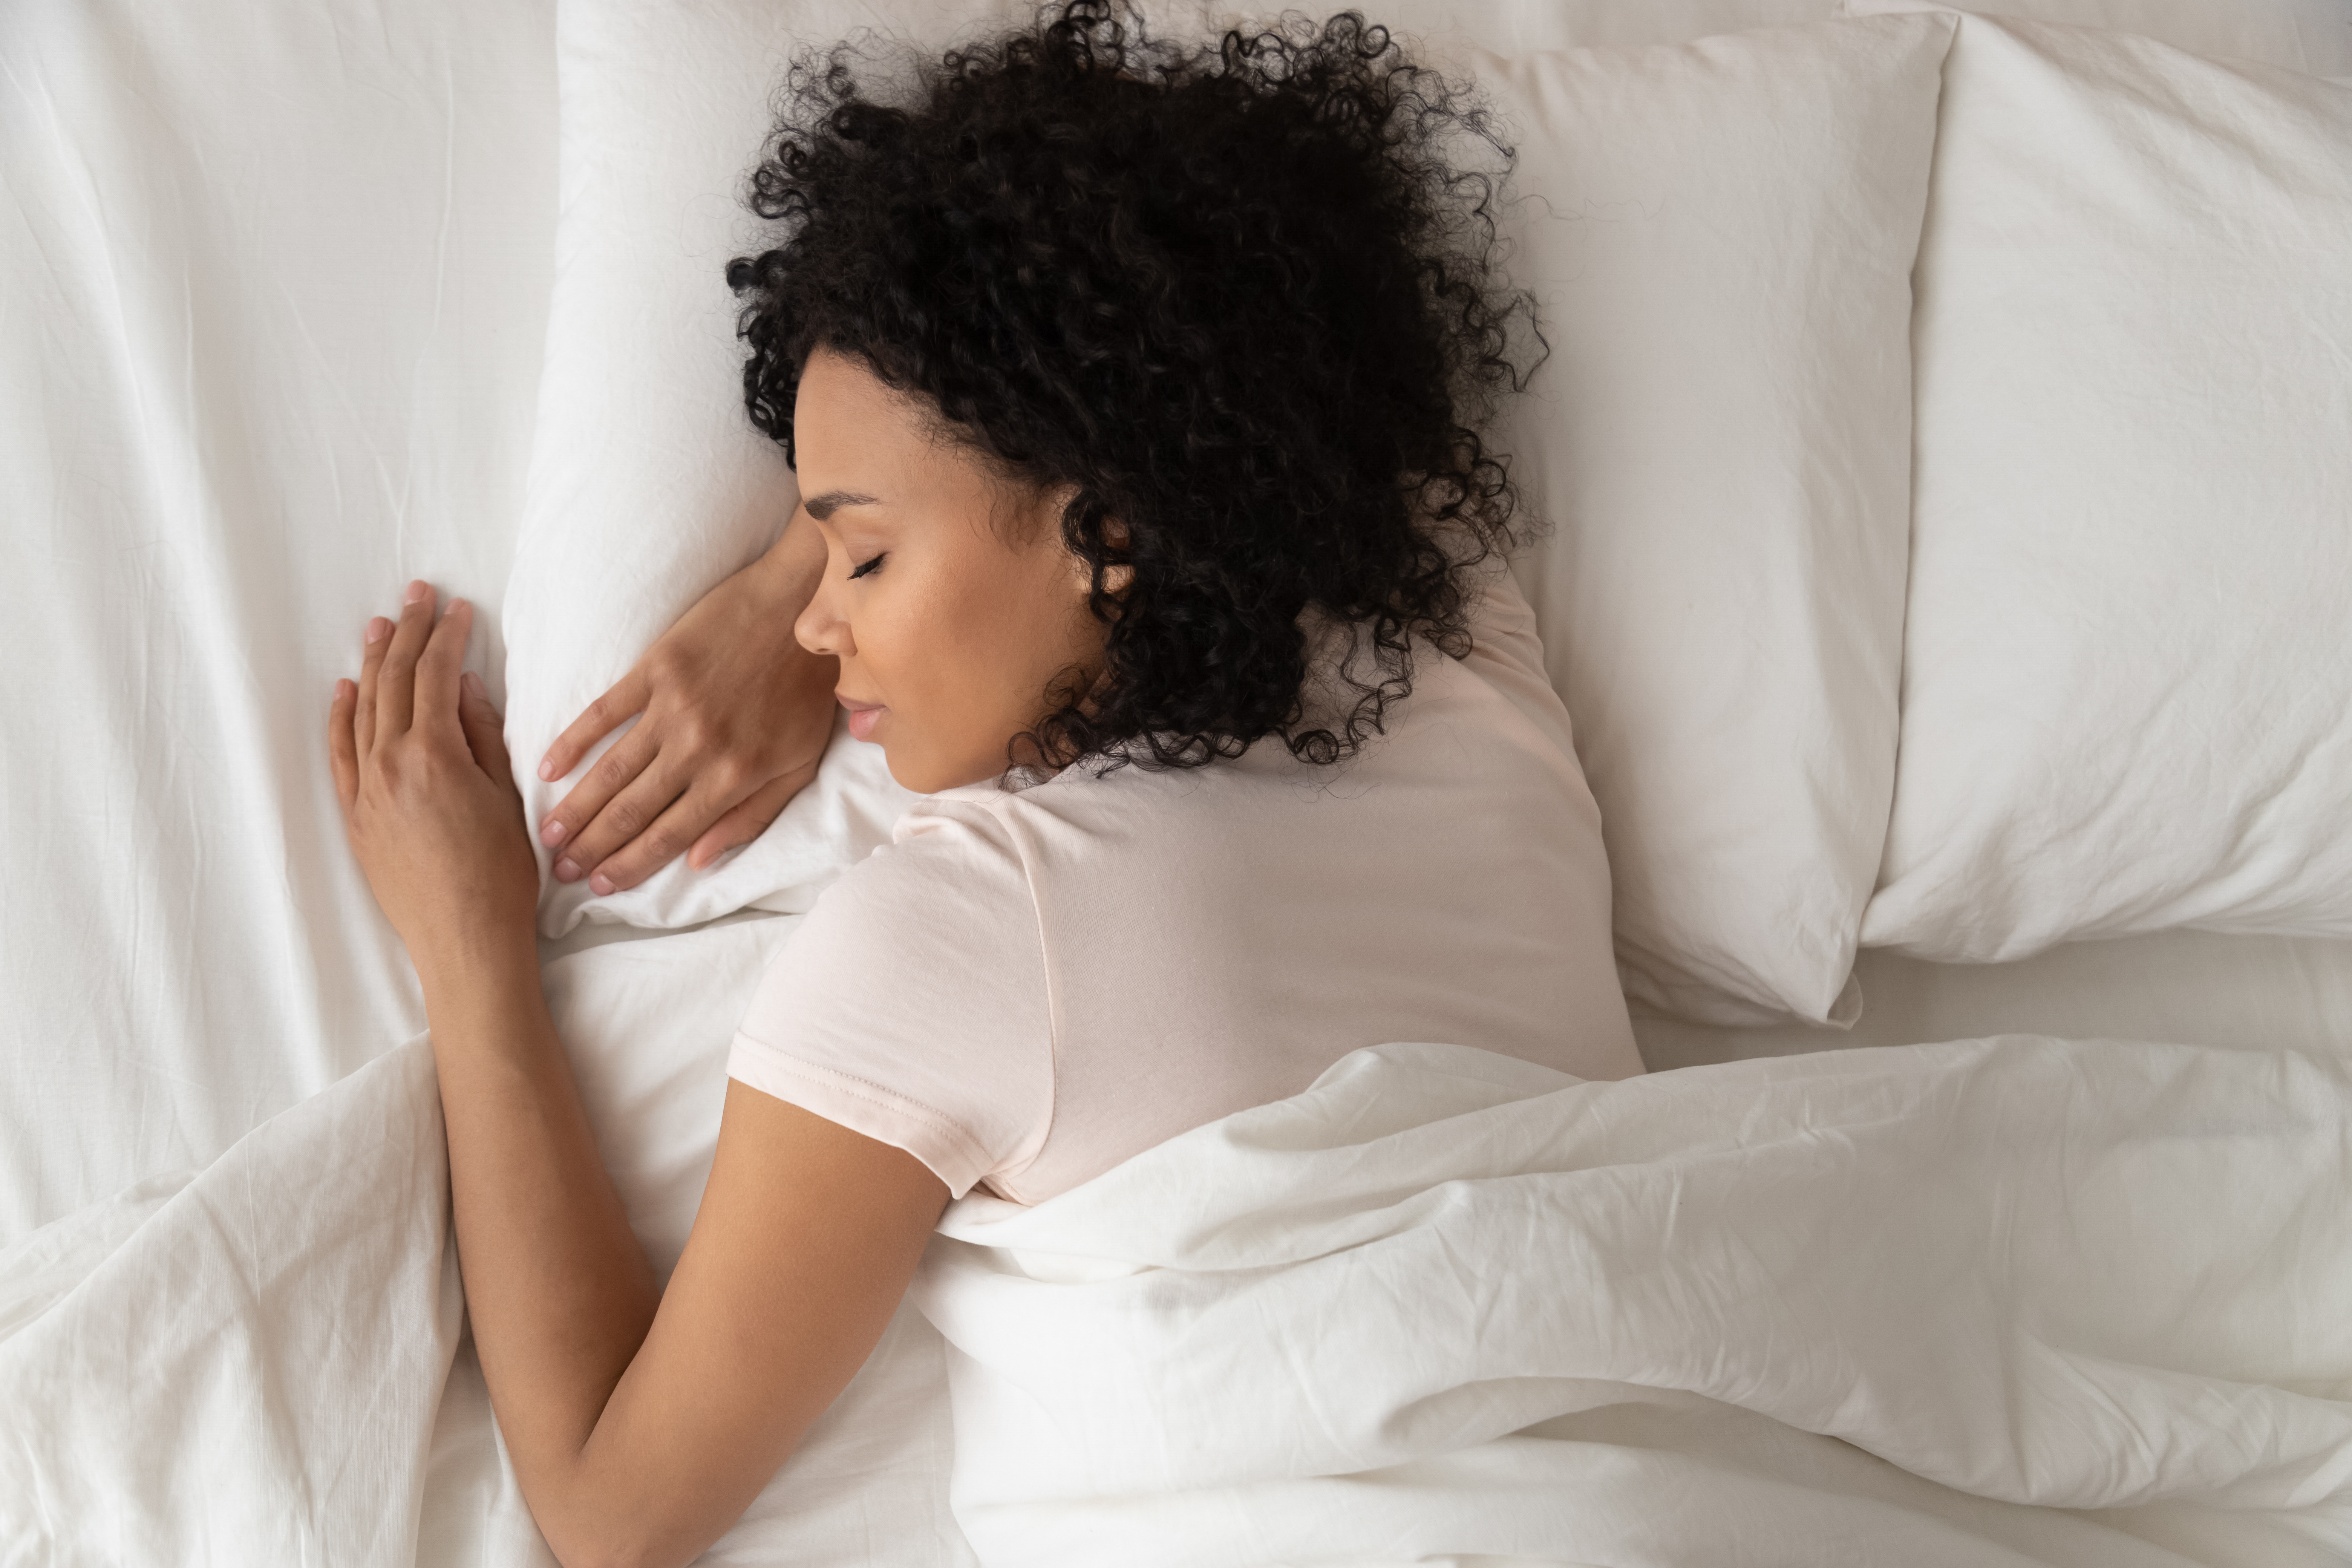 African-American woman sleeping on her stomach on a bed with fresh sheets